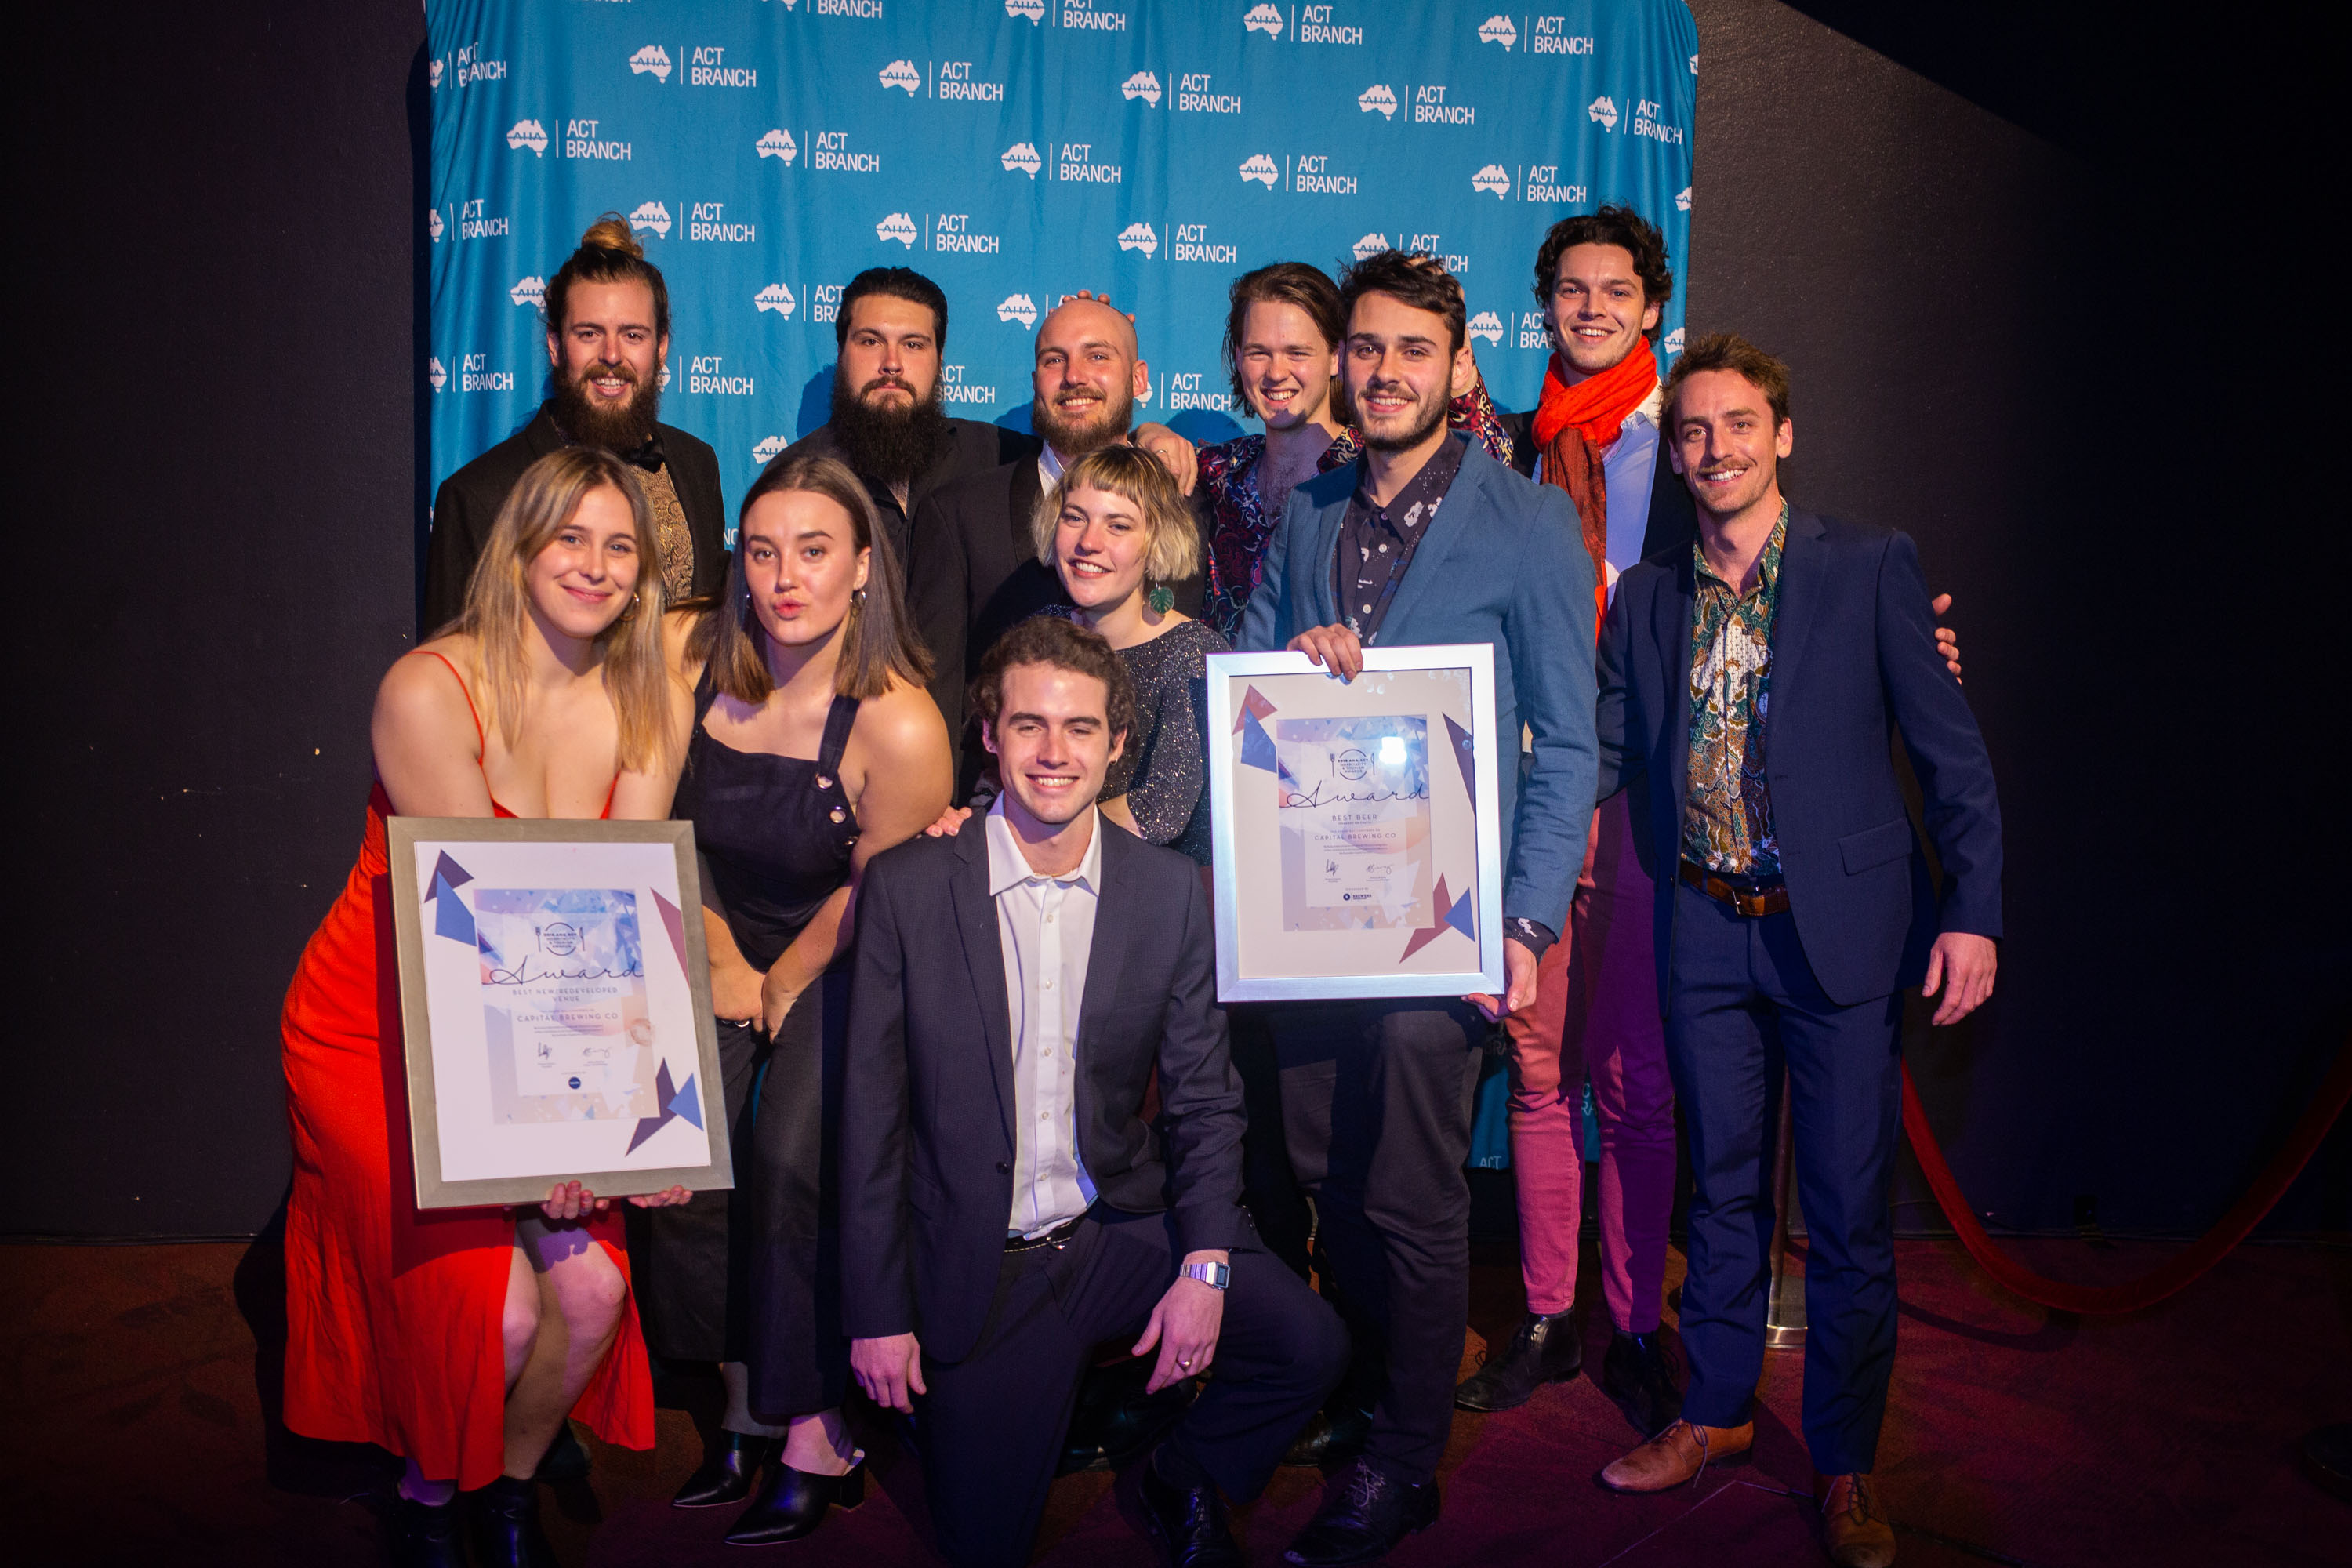 Capital team collects AHA awards Img Credit Ben Yousef